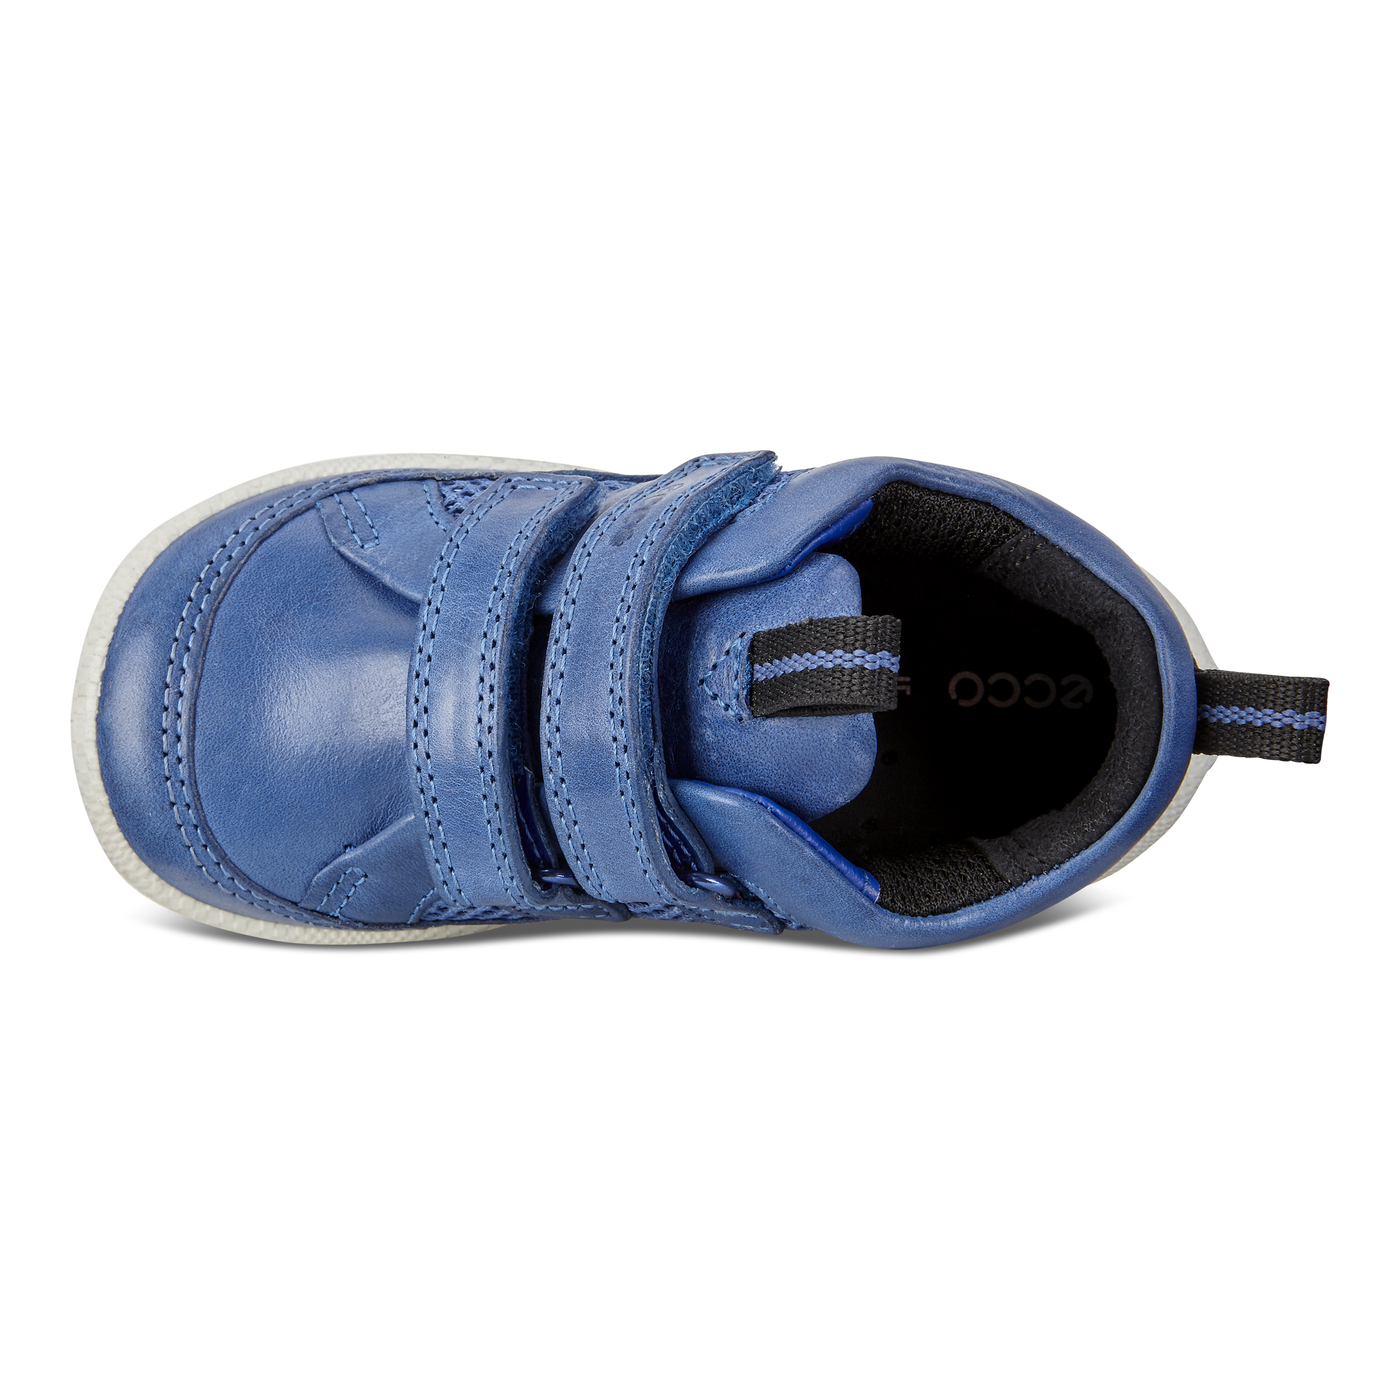 ECCO BIOM LITE INFANTS Velcro